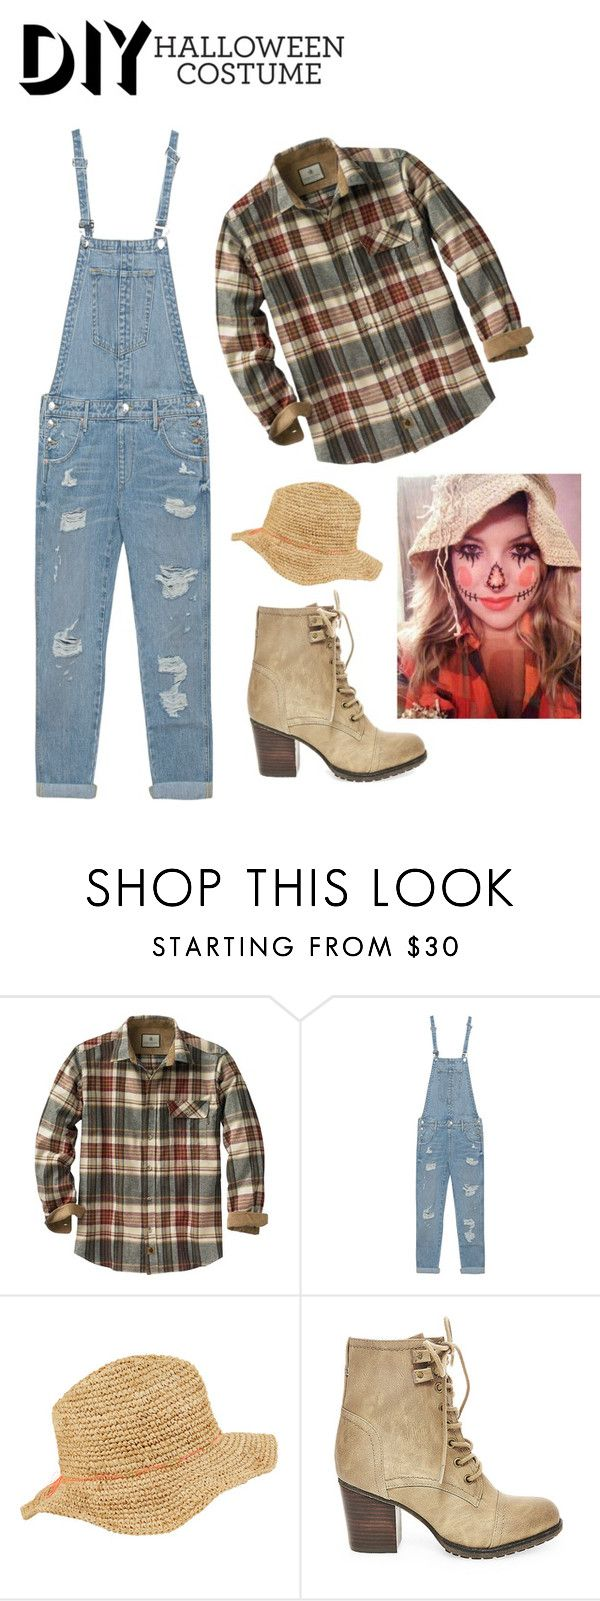 """""""DIY scarecrow costume!!"""" by graci0325 ❤ liked on Polyvore featuring True Religion, Accessorize, Steve Madden, halloweencostume and DIYHalloween"""